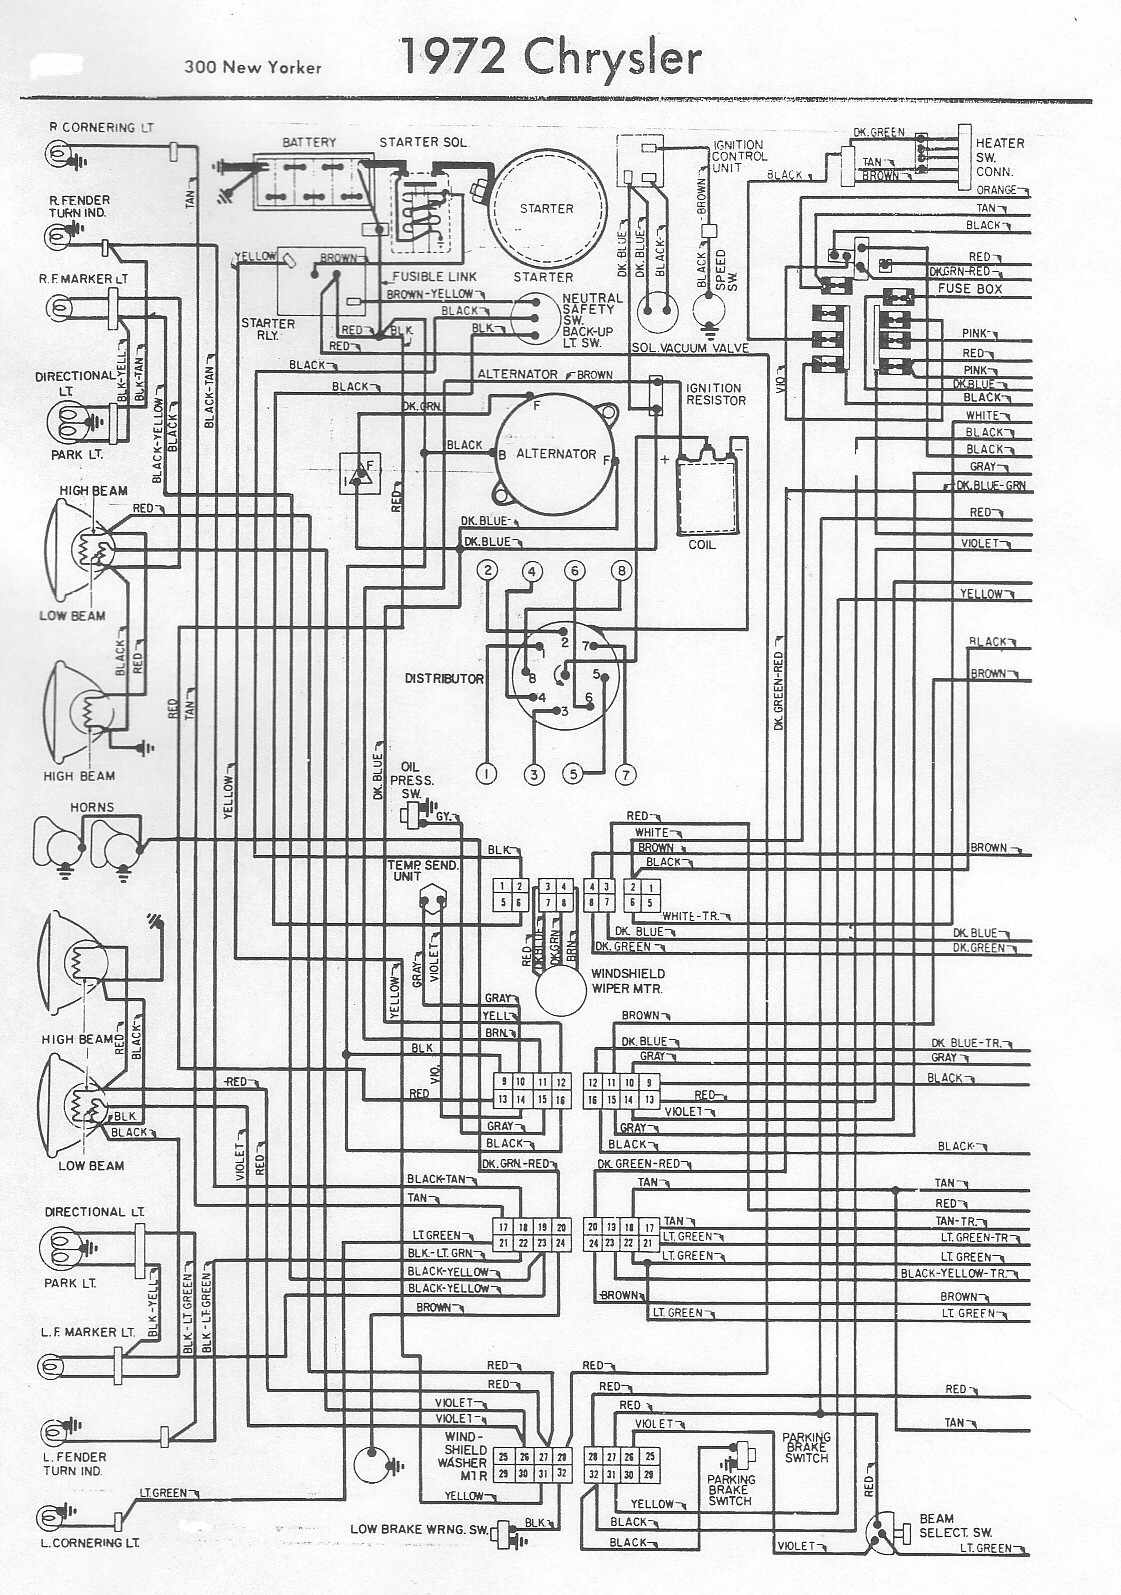 LE_9484] Wiring Diagram 1991 Chrysler New Yorker Get Free Image About Wiring  Wiring DiagramPonge Umize Hapolo Sarc Amenti Phot Oliti Pap Mohammedshrine Librar Wiring  101